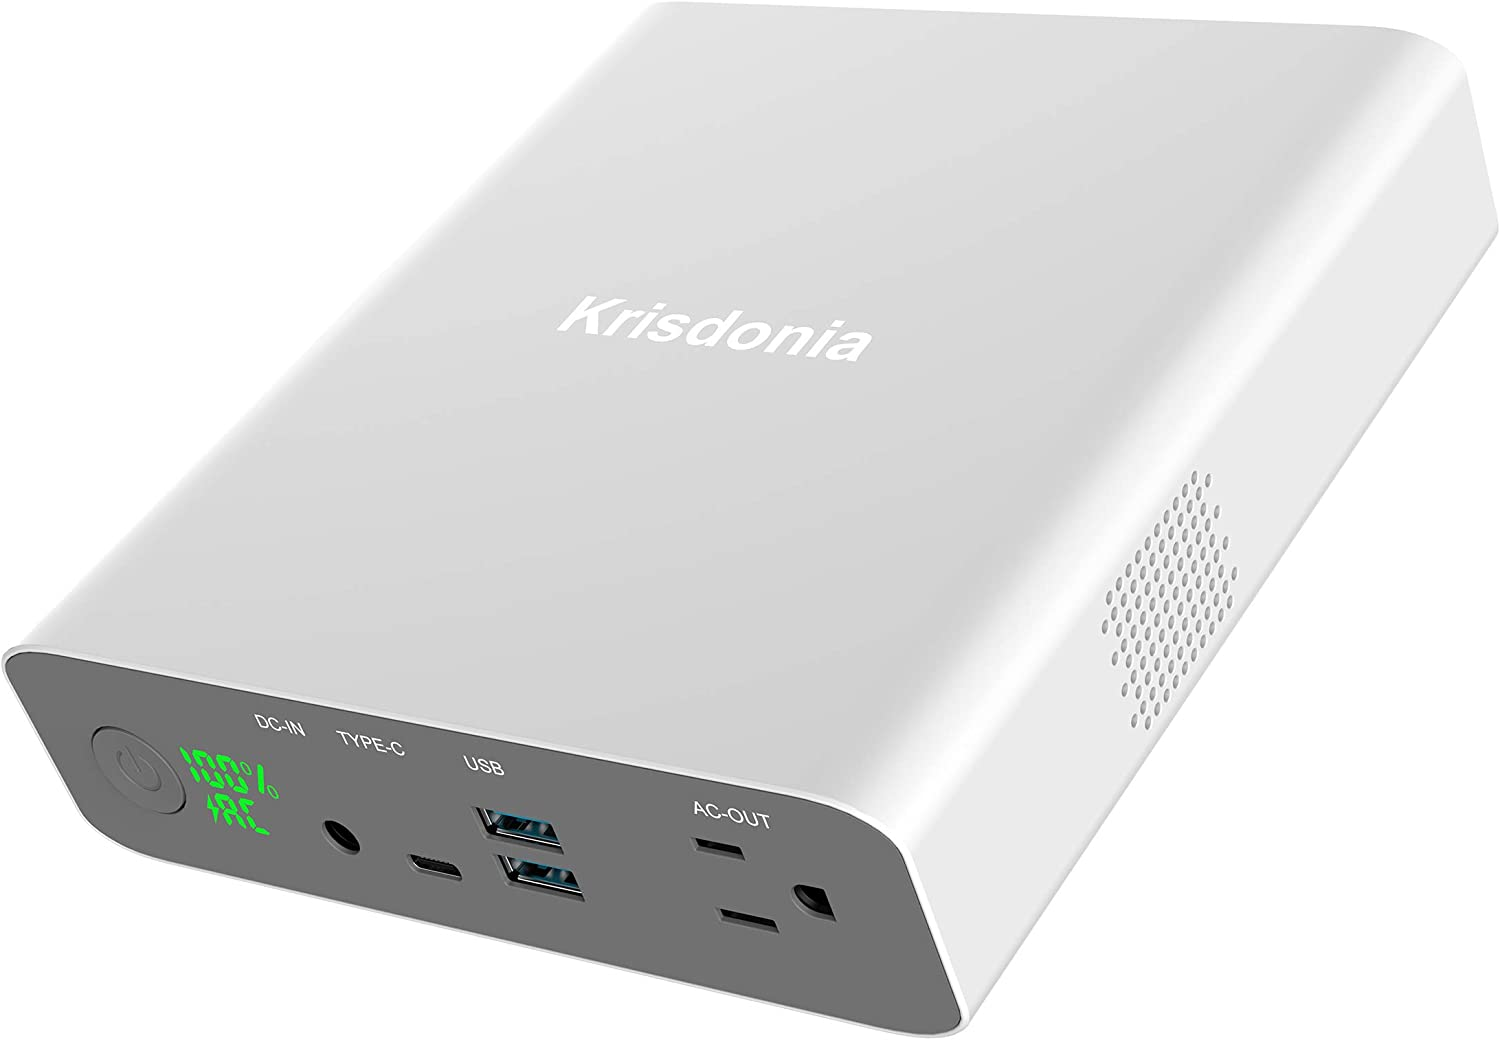 Krisdonia AC Outlet Portable Charger Battery Pack - 27000mAh 130W/110V Travel Power Bank with Built in AC Outlet and 2 QC3.0 USB Ports and Type-C Port for MacBook, Laptop, Smartphone and More